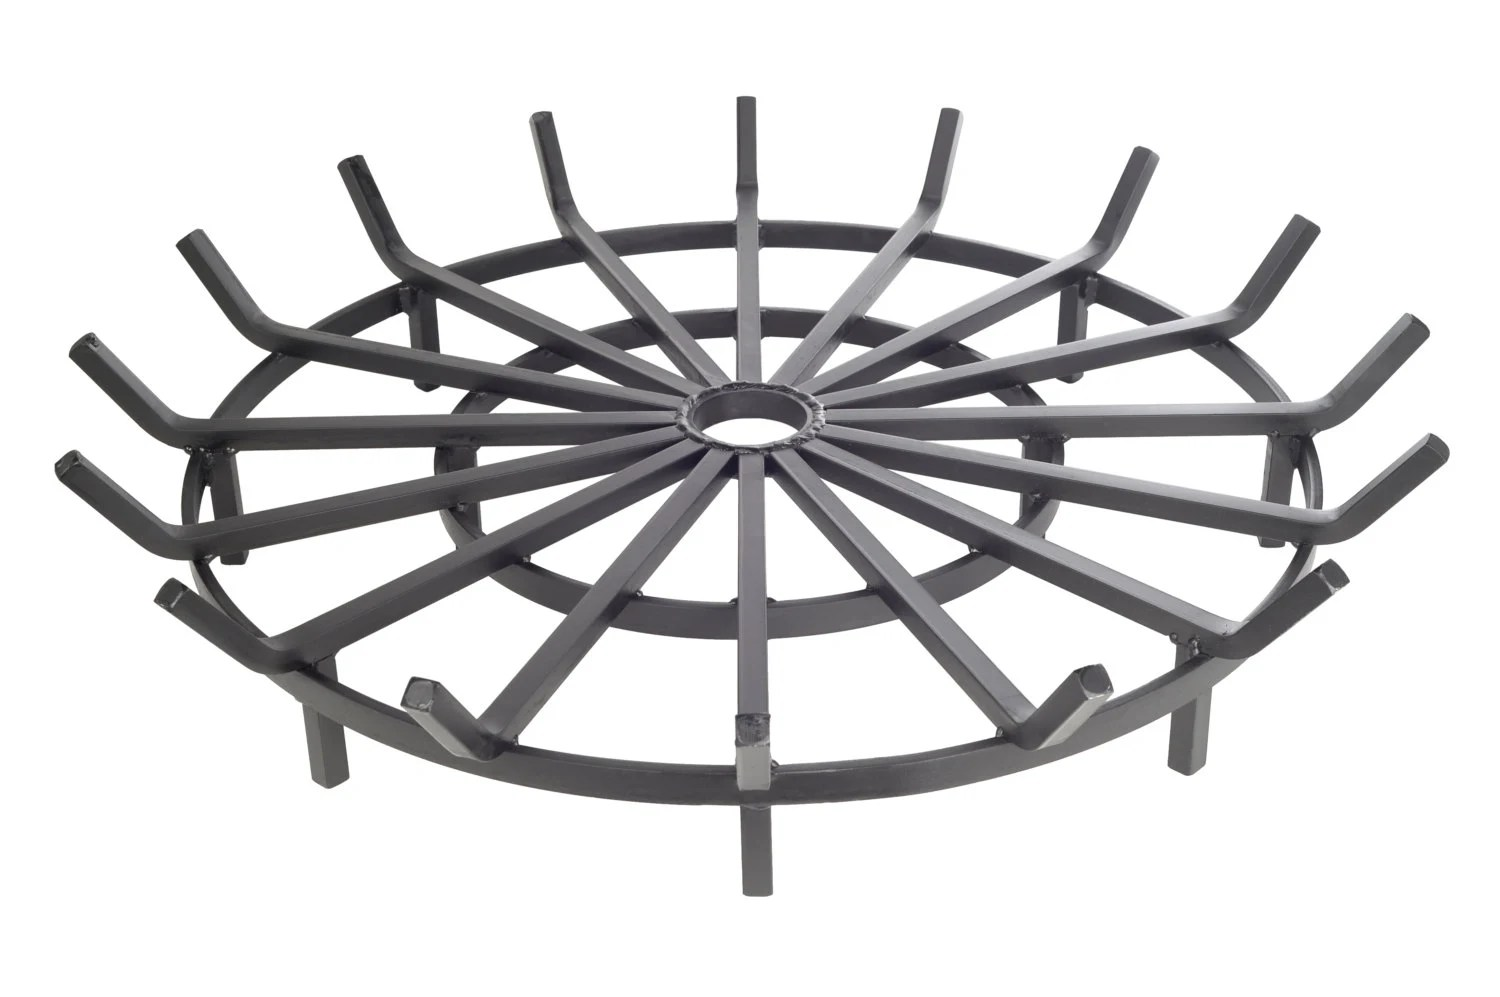 Super Heavy Duty 40 Inch Wagon Wheel Grate For Outdoor